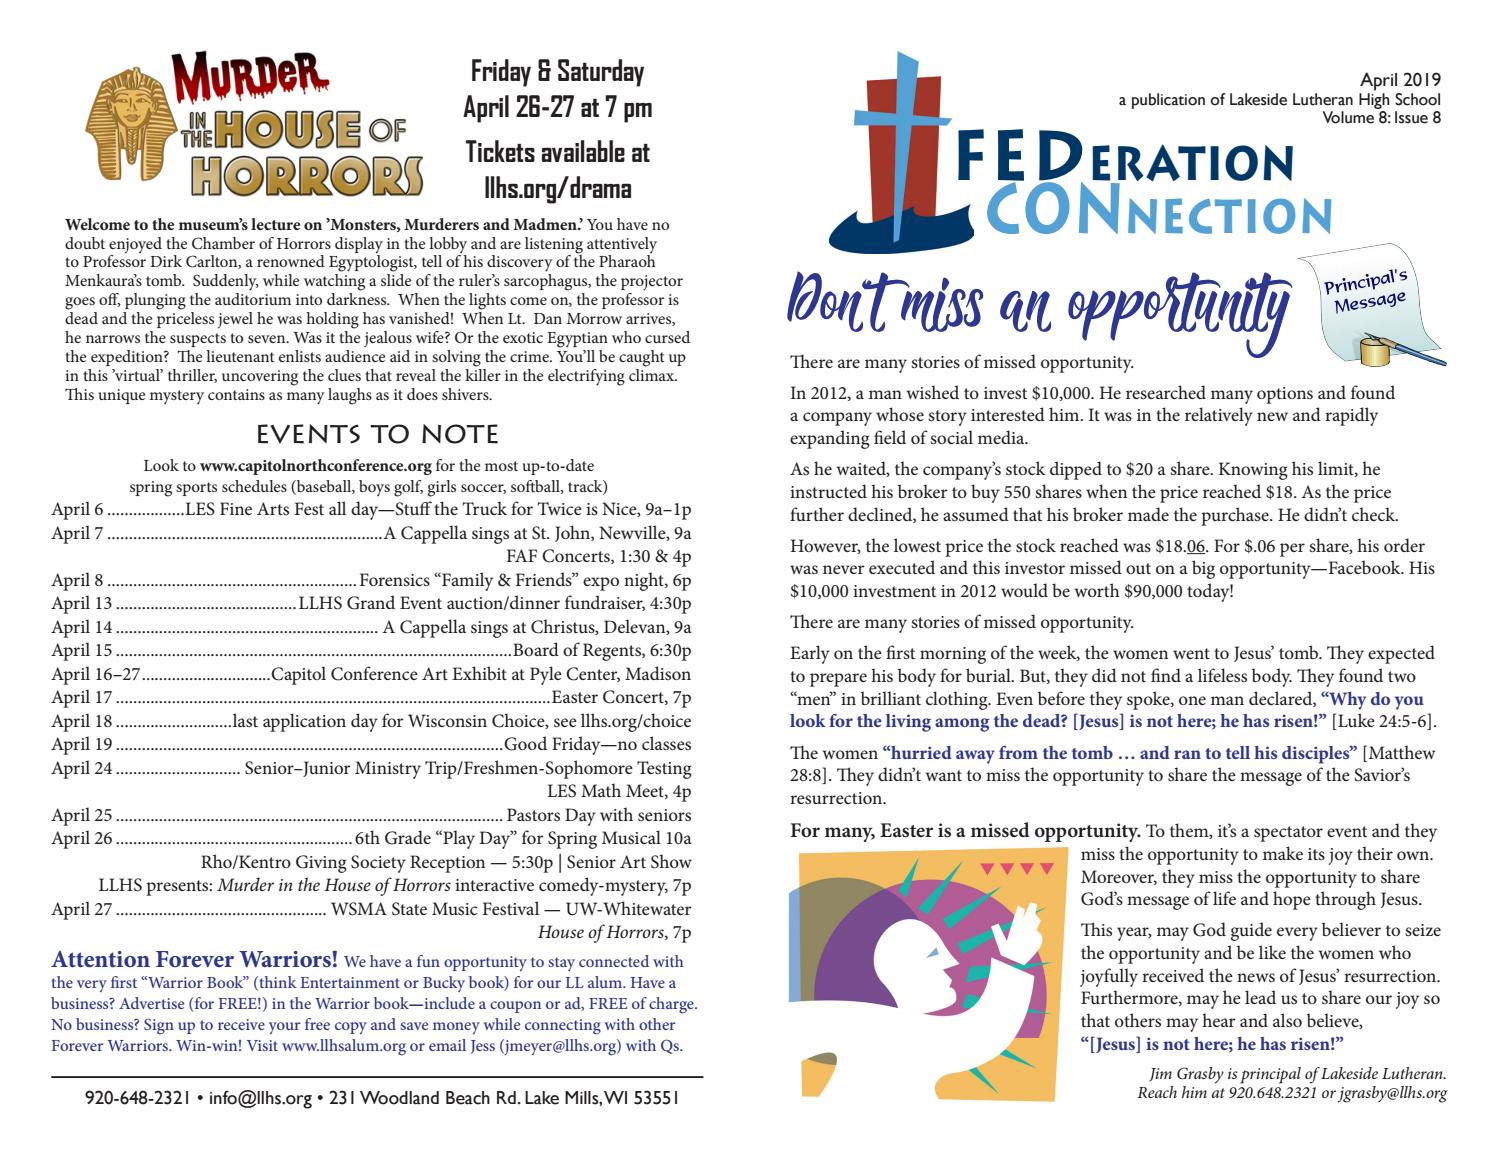 Lakeside Lutheran Federation Connection April 2019 by LLHS